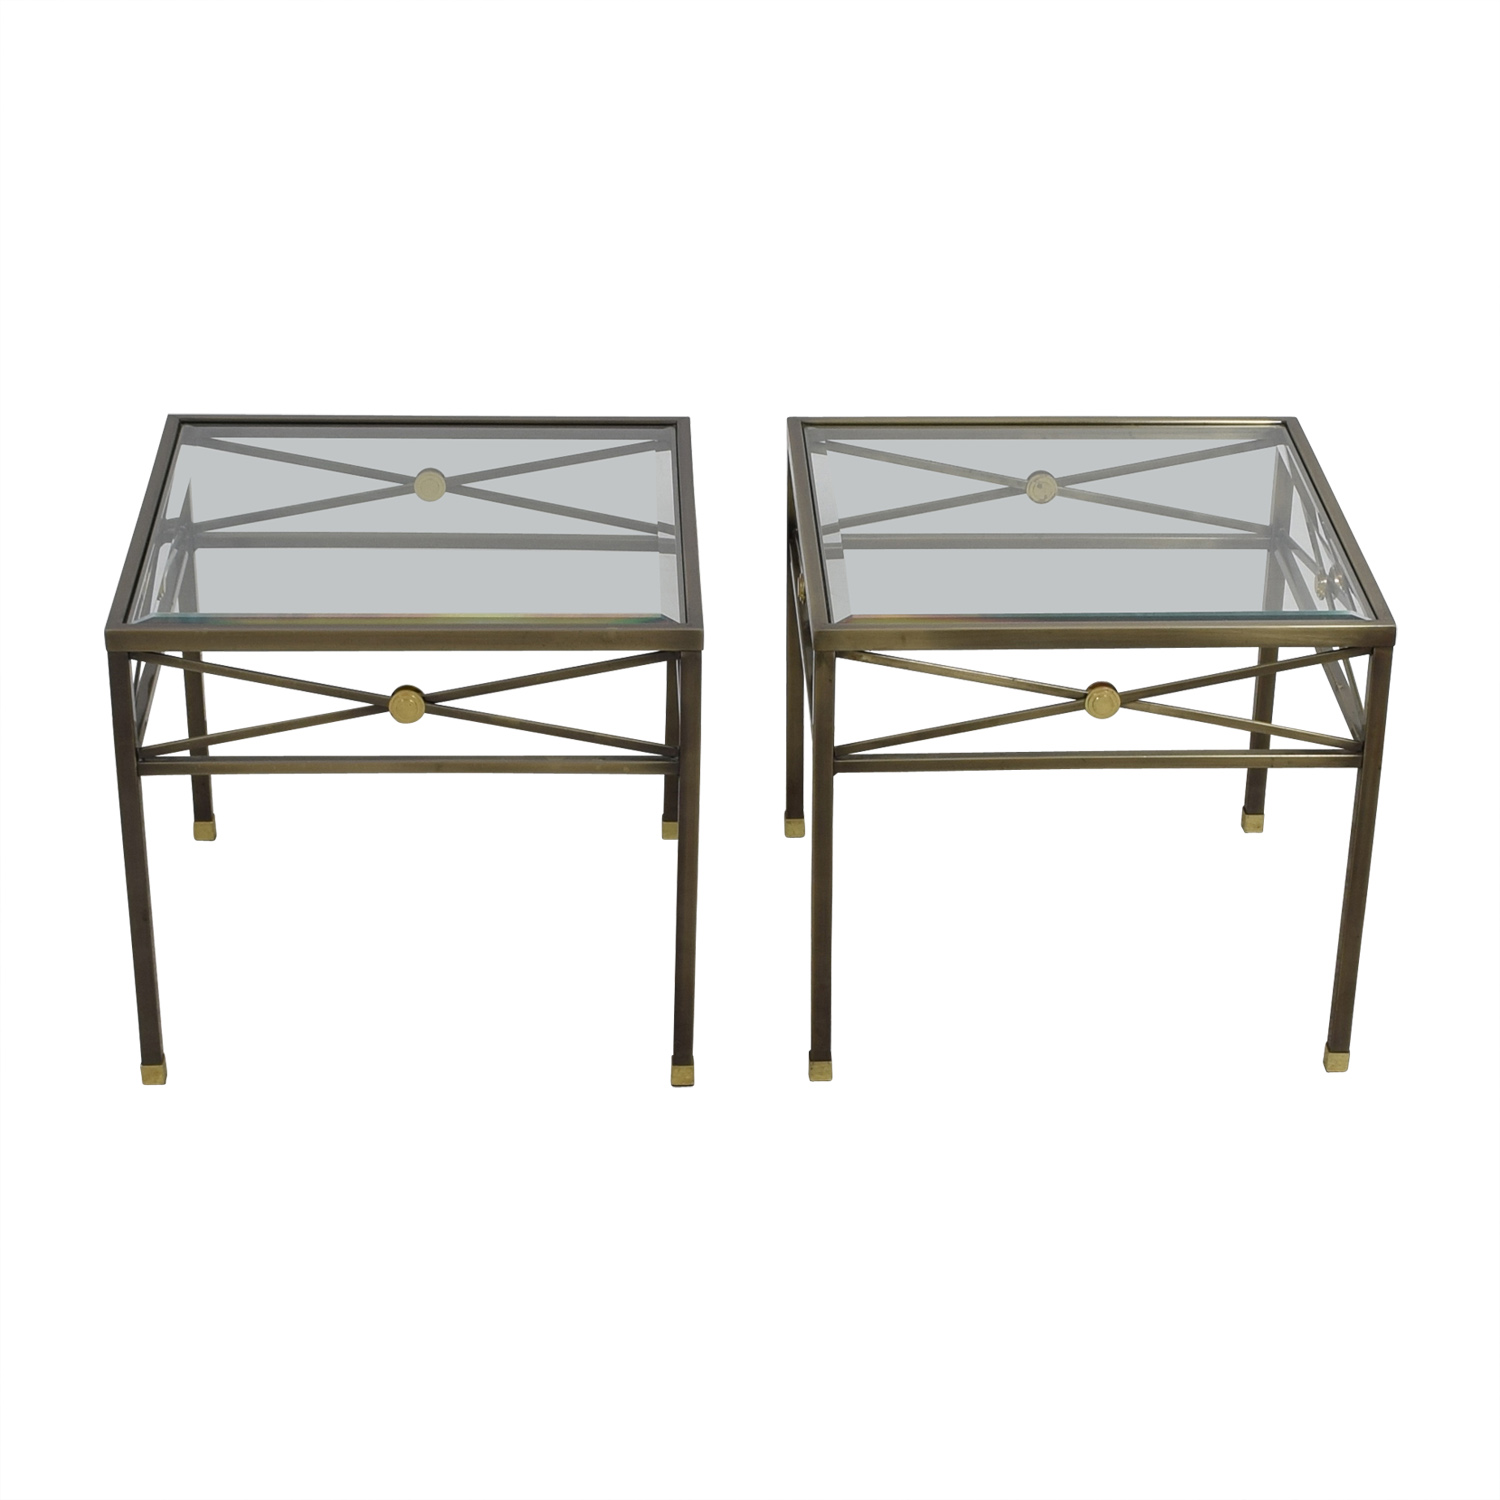 Macy's Macy's Glass and Brass Side Tables on sale